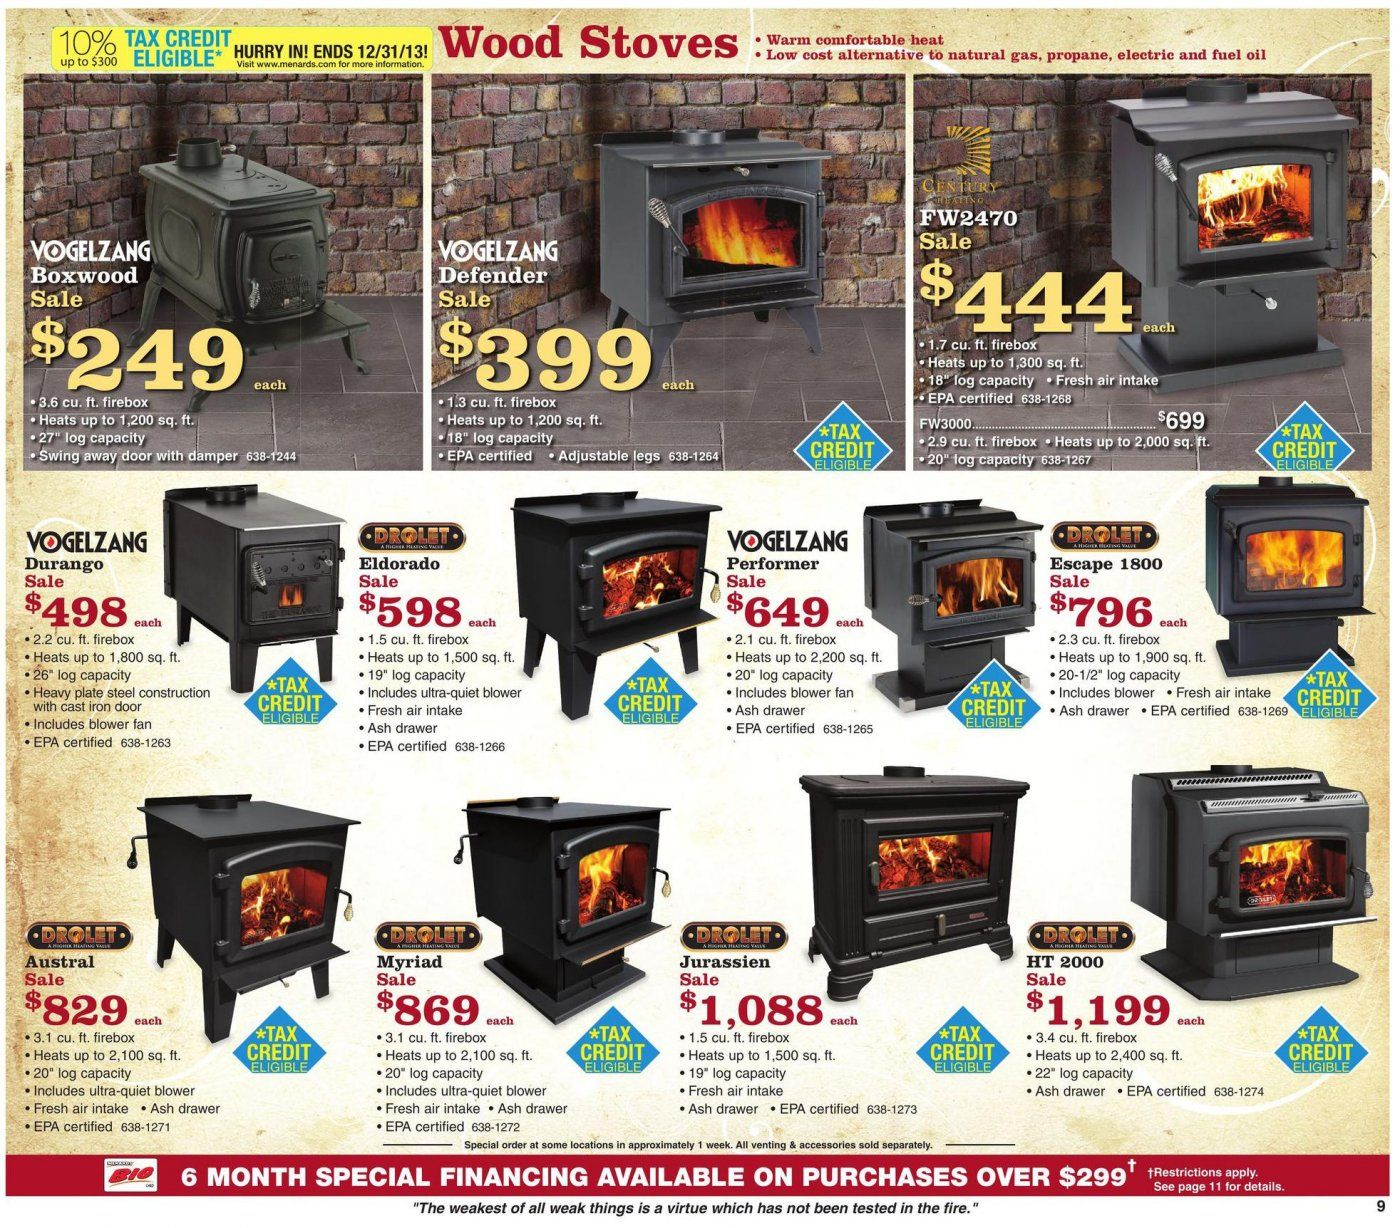 Good Deals On Wood Stoves Till Oct 9th Hearth.com Forums Home - Menards Wood Stove WB Designs